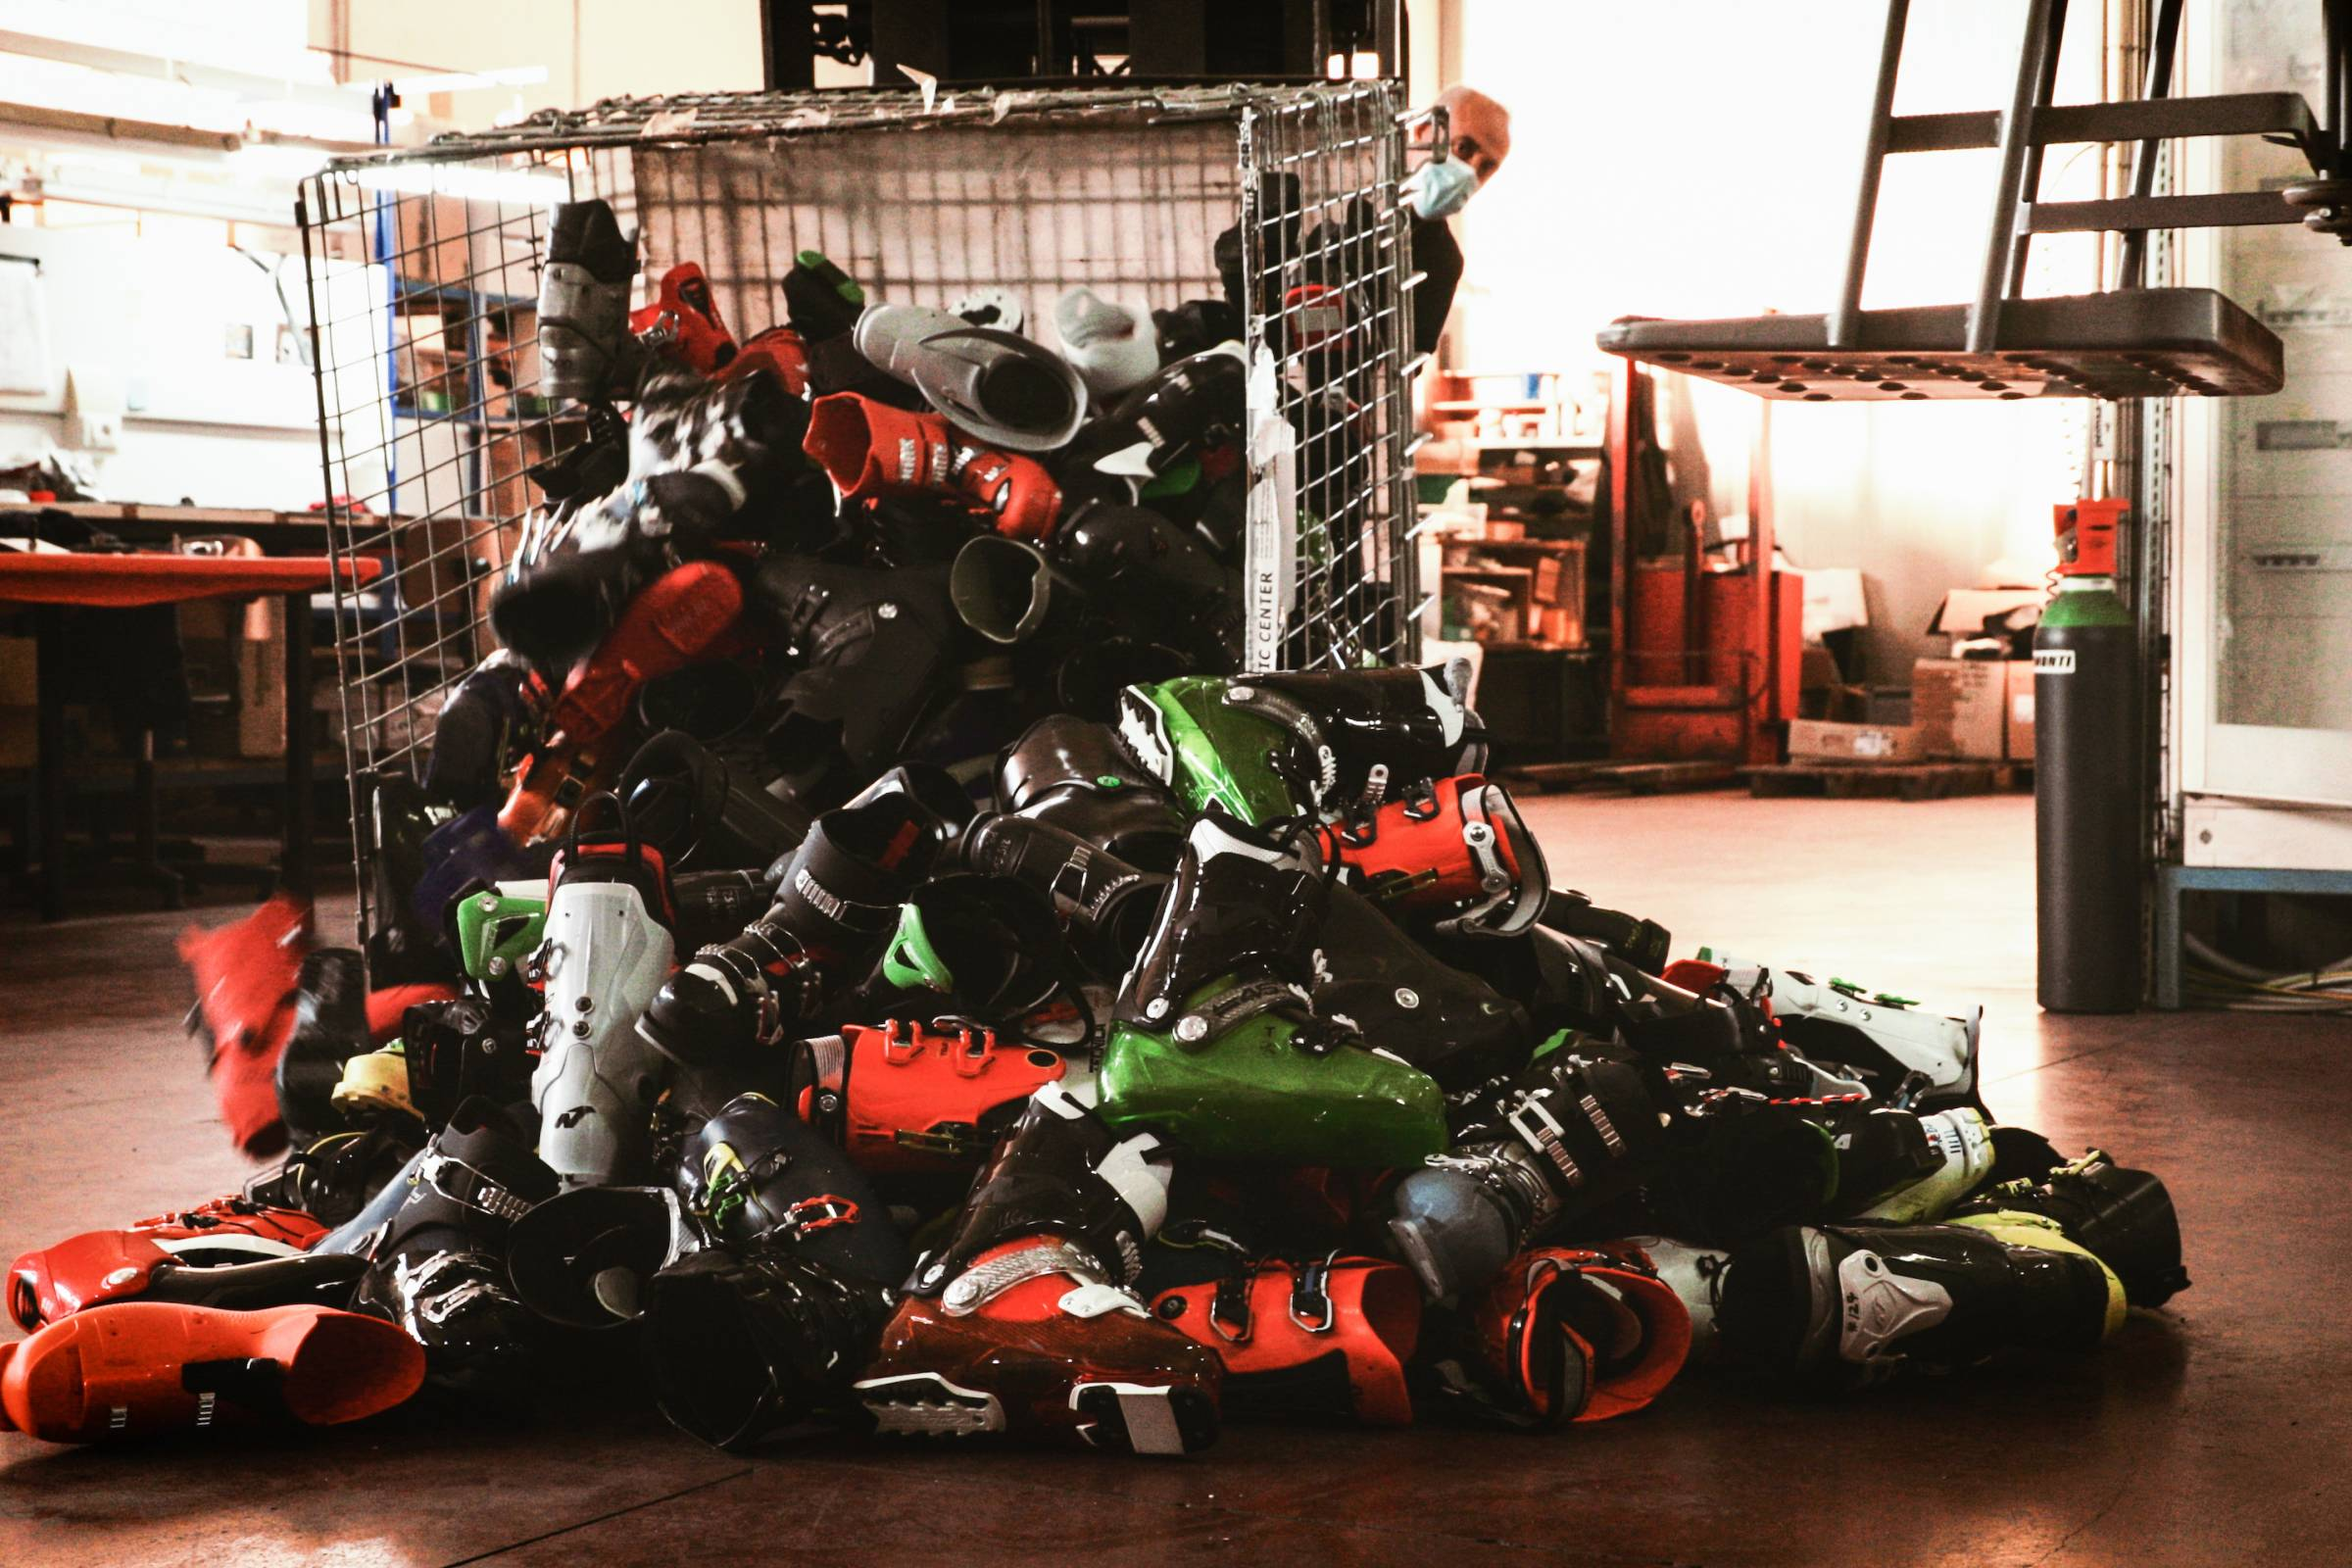 metal bin tipped over with Tecnica ski boots spilling out onto the floor